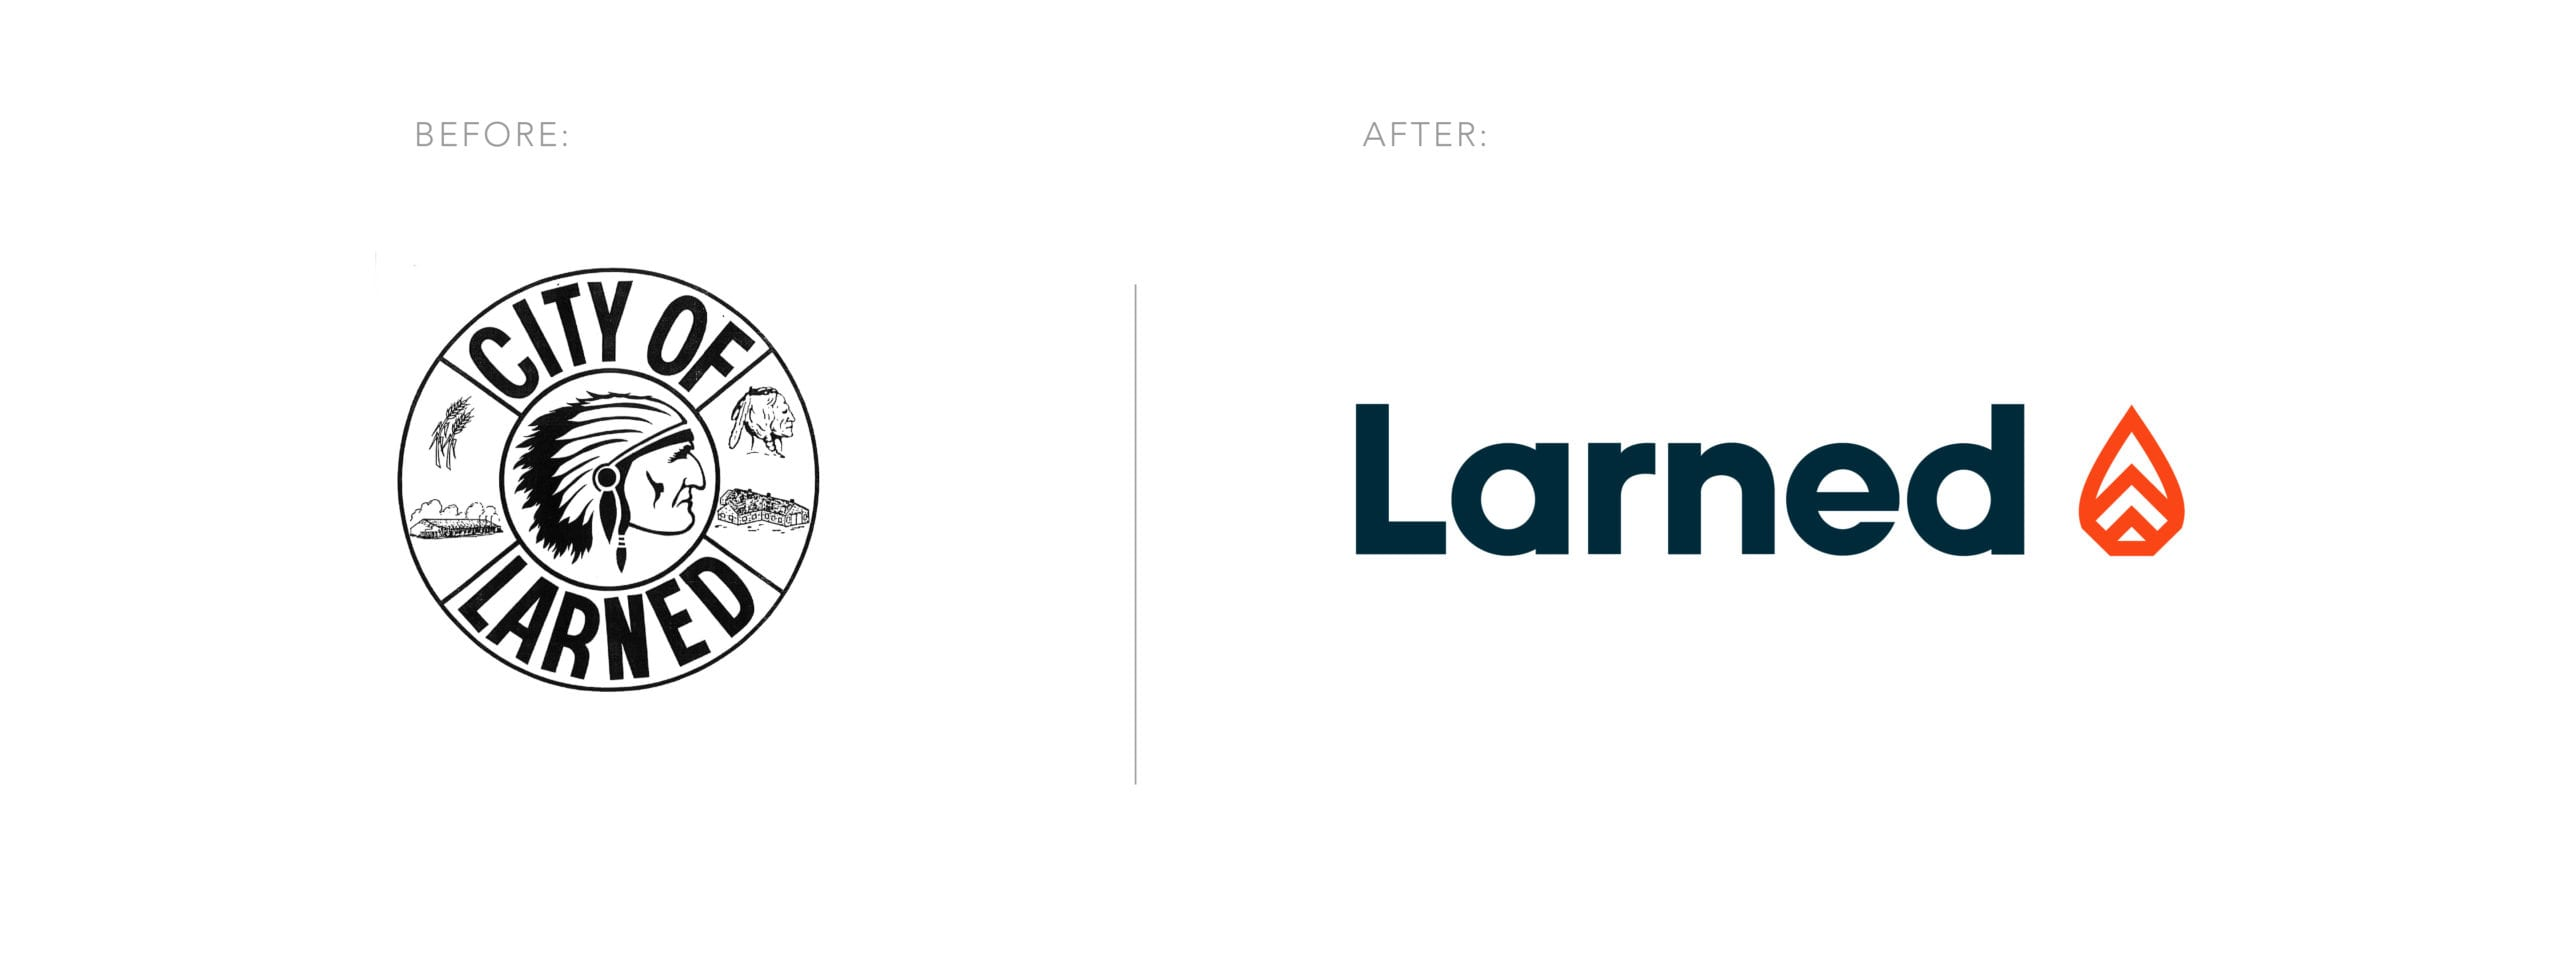 Larned Logos before and after